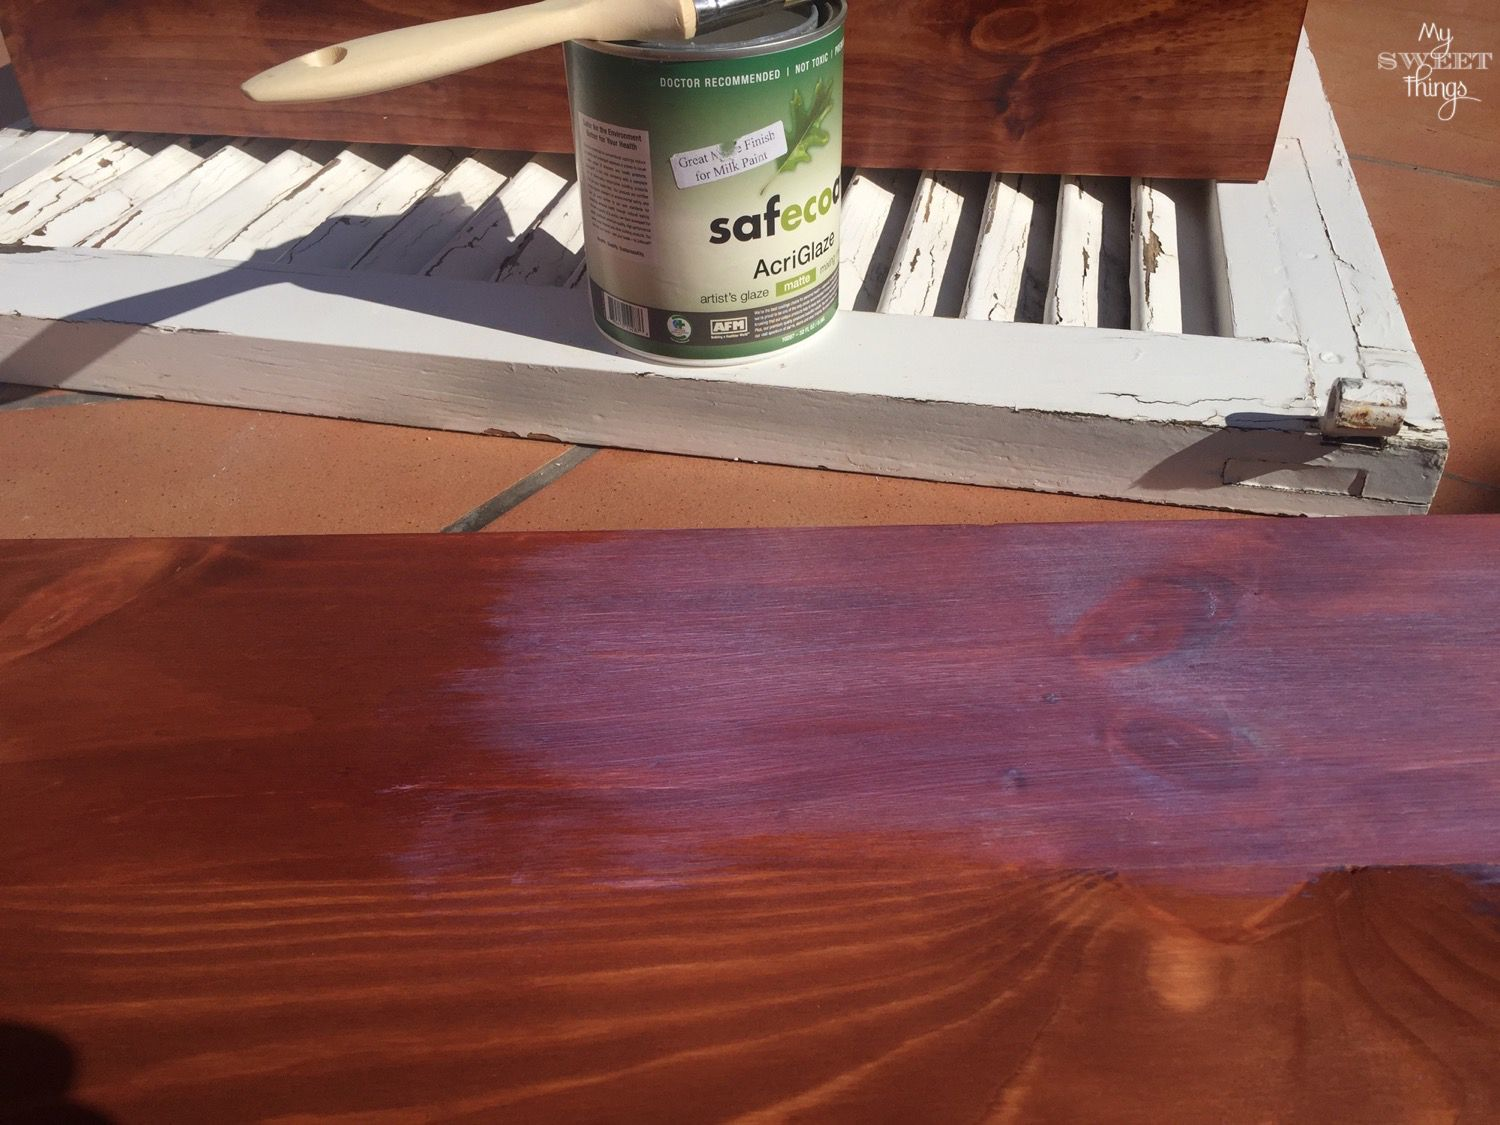 How To Upcycle Old Furniture · Staining the top · Via www.sweethings.net